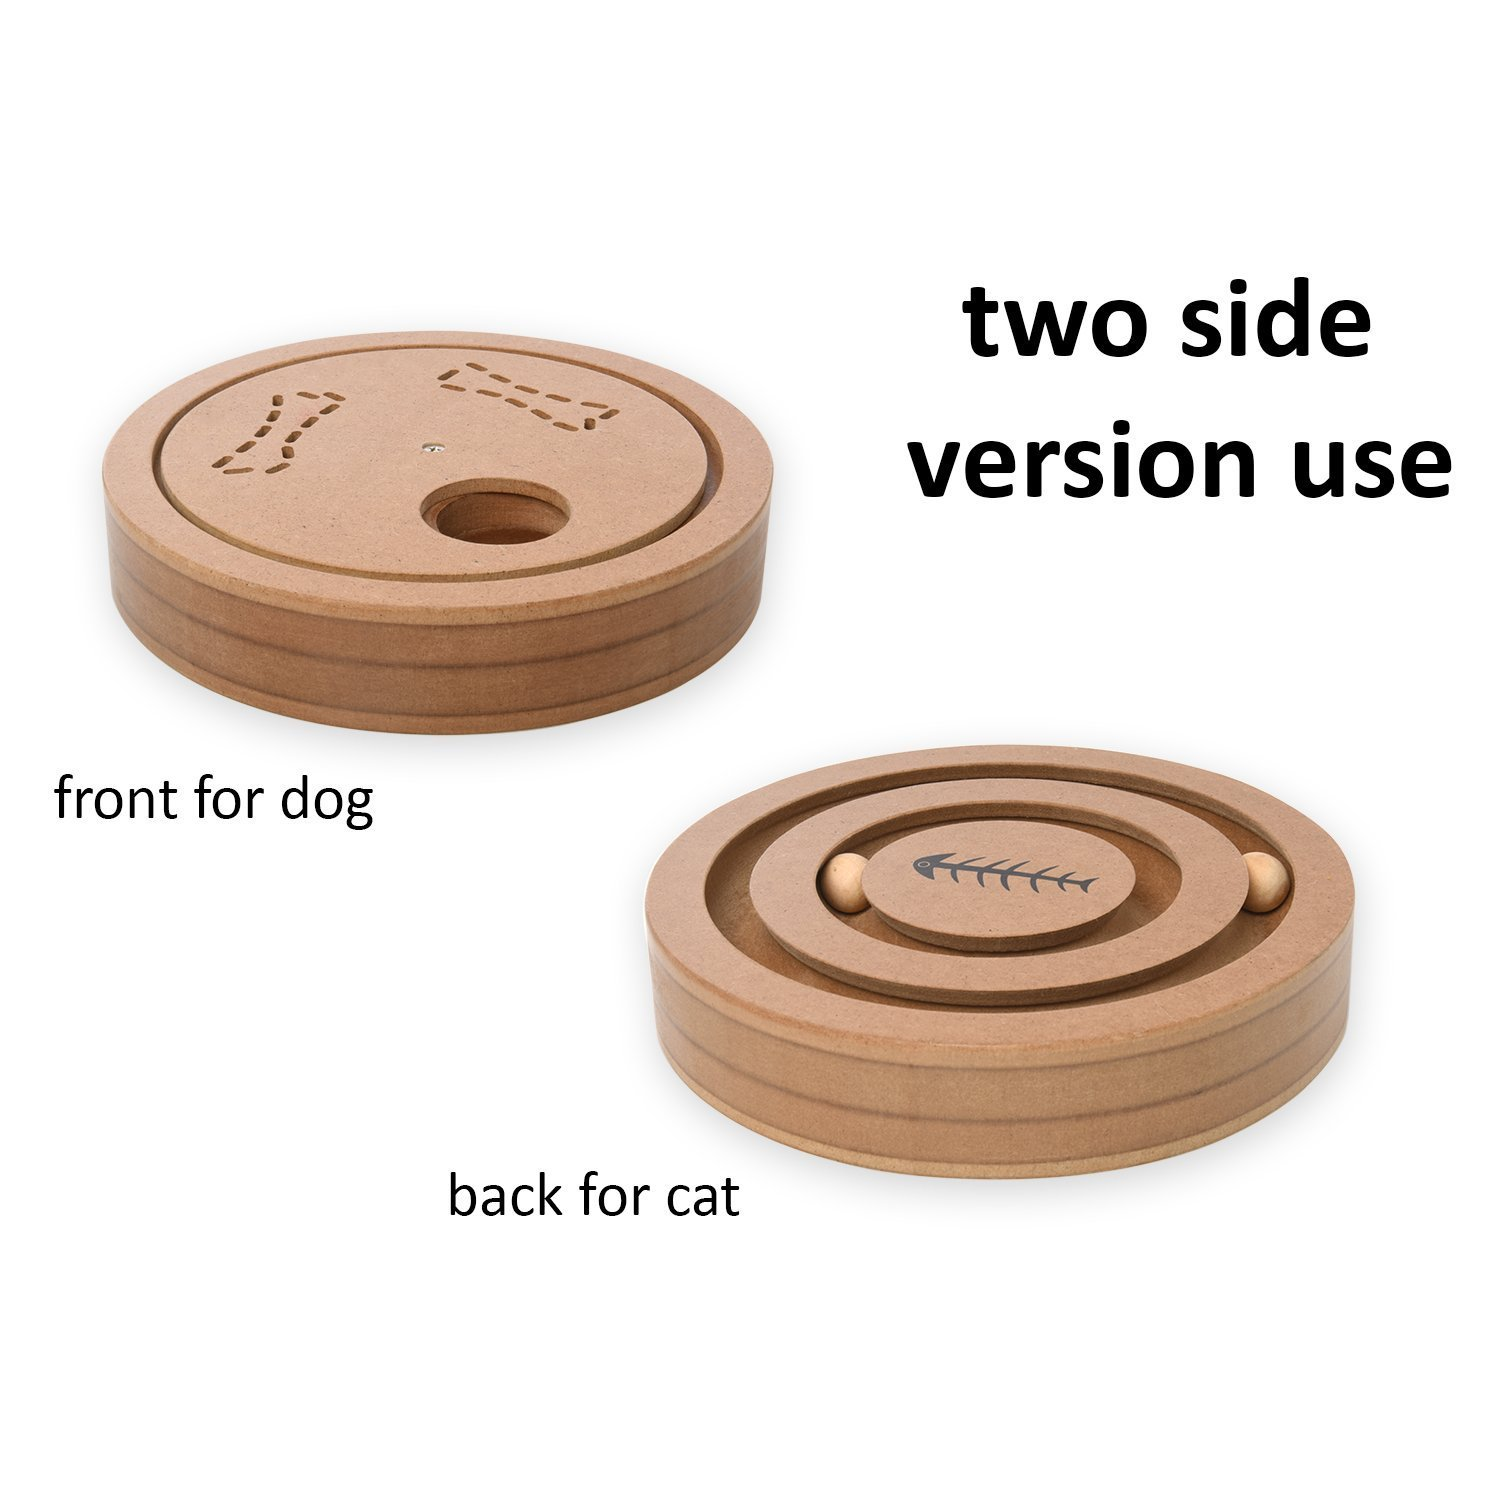 Best Interactive Pet Intelligence Toy – Pet Food Dispenser Treated Wooden Intellectual Puzzle IQ Hide and Seek Toy Game for Dogs Cats Pets, Natural Bowls Feeder for Small Medium Large Dogs and Cats by Proffcenter (Image #3)